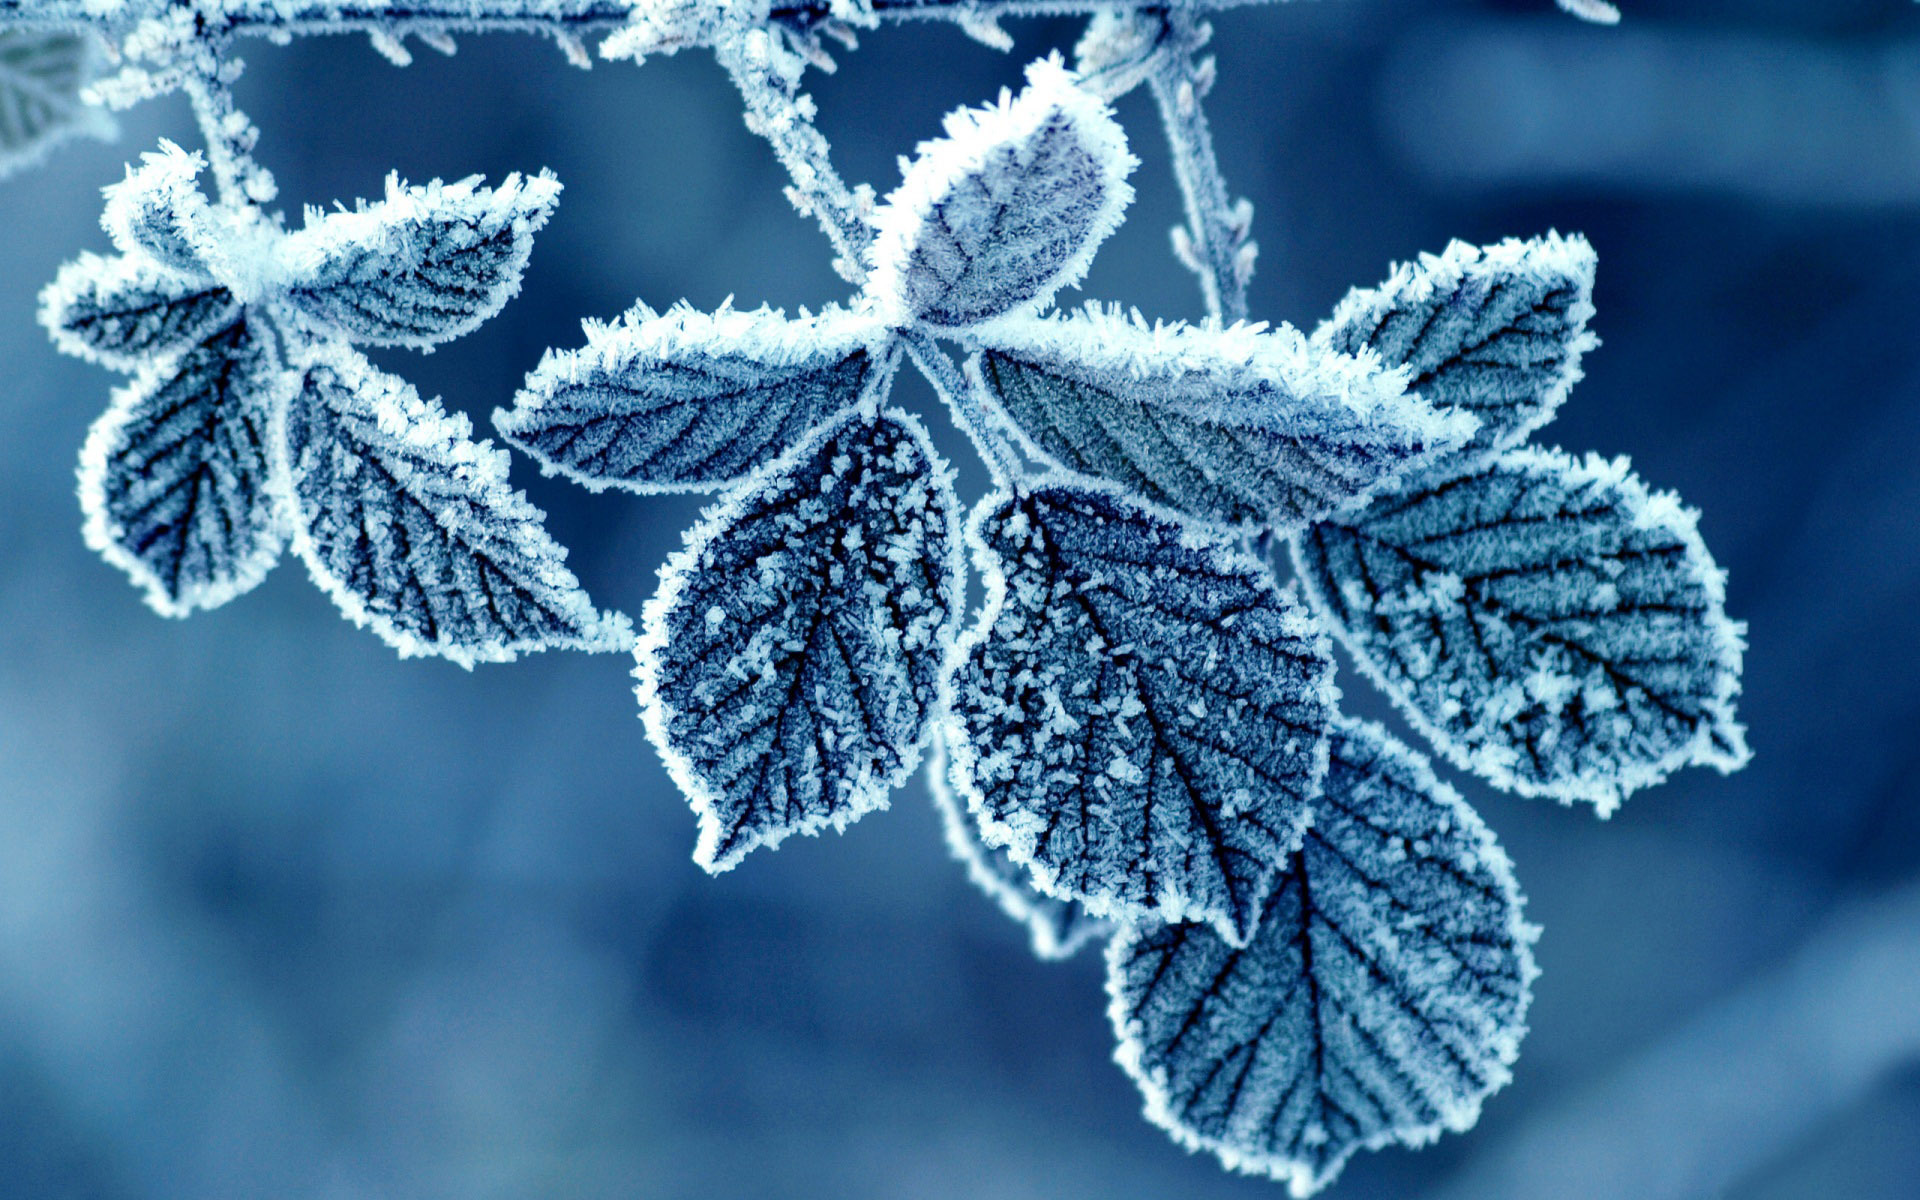 Frosty leaves wallpaper